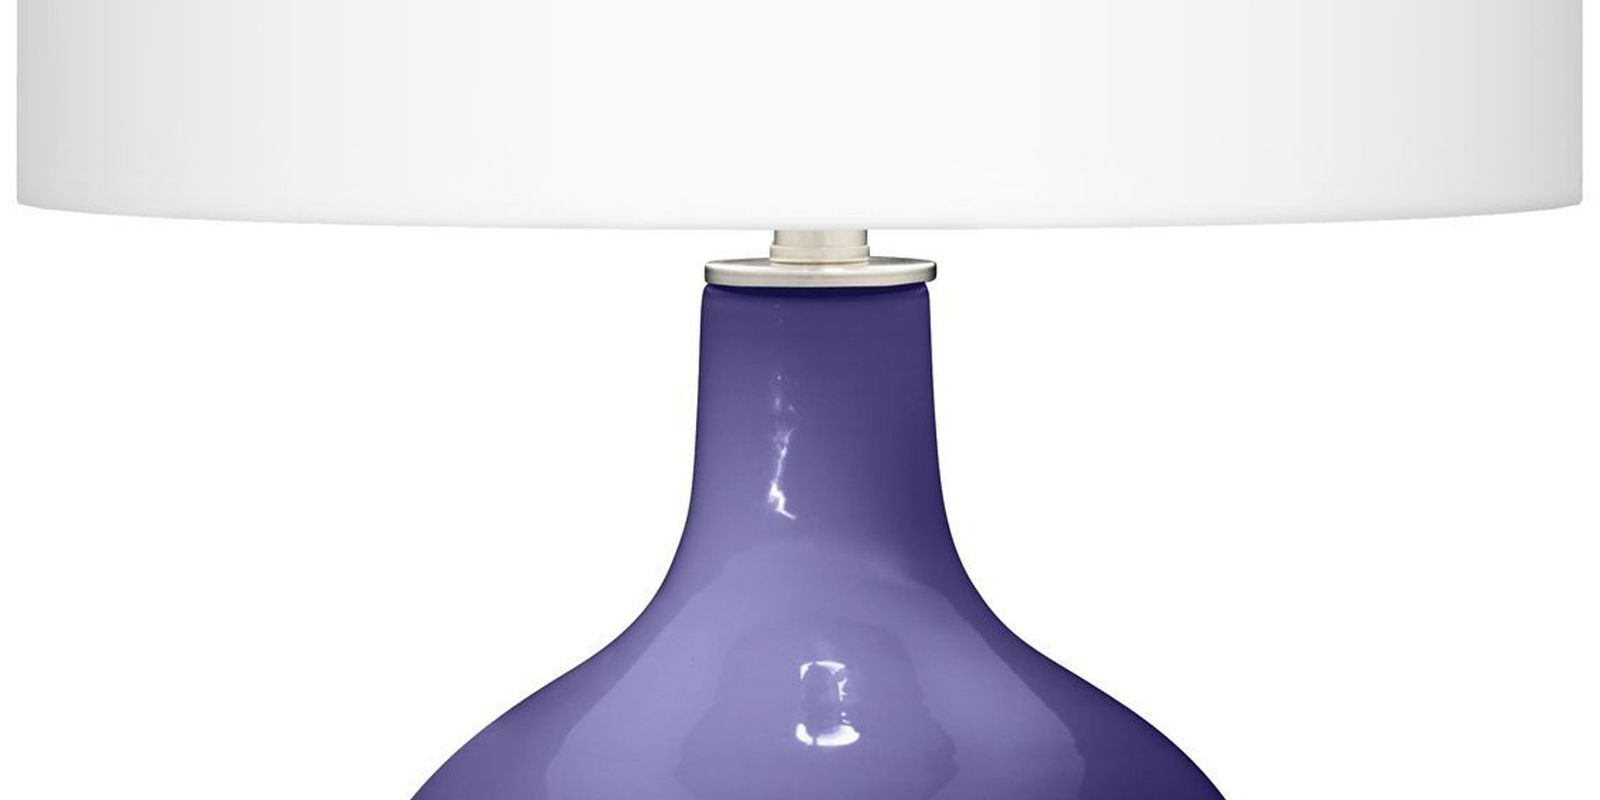 Cleaning Lampshades Captivating Cleaning Lamp Shades Design Decoration